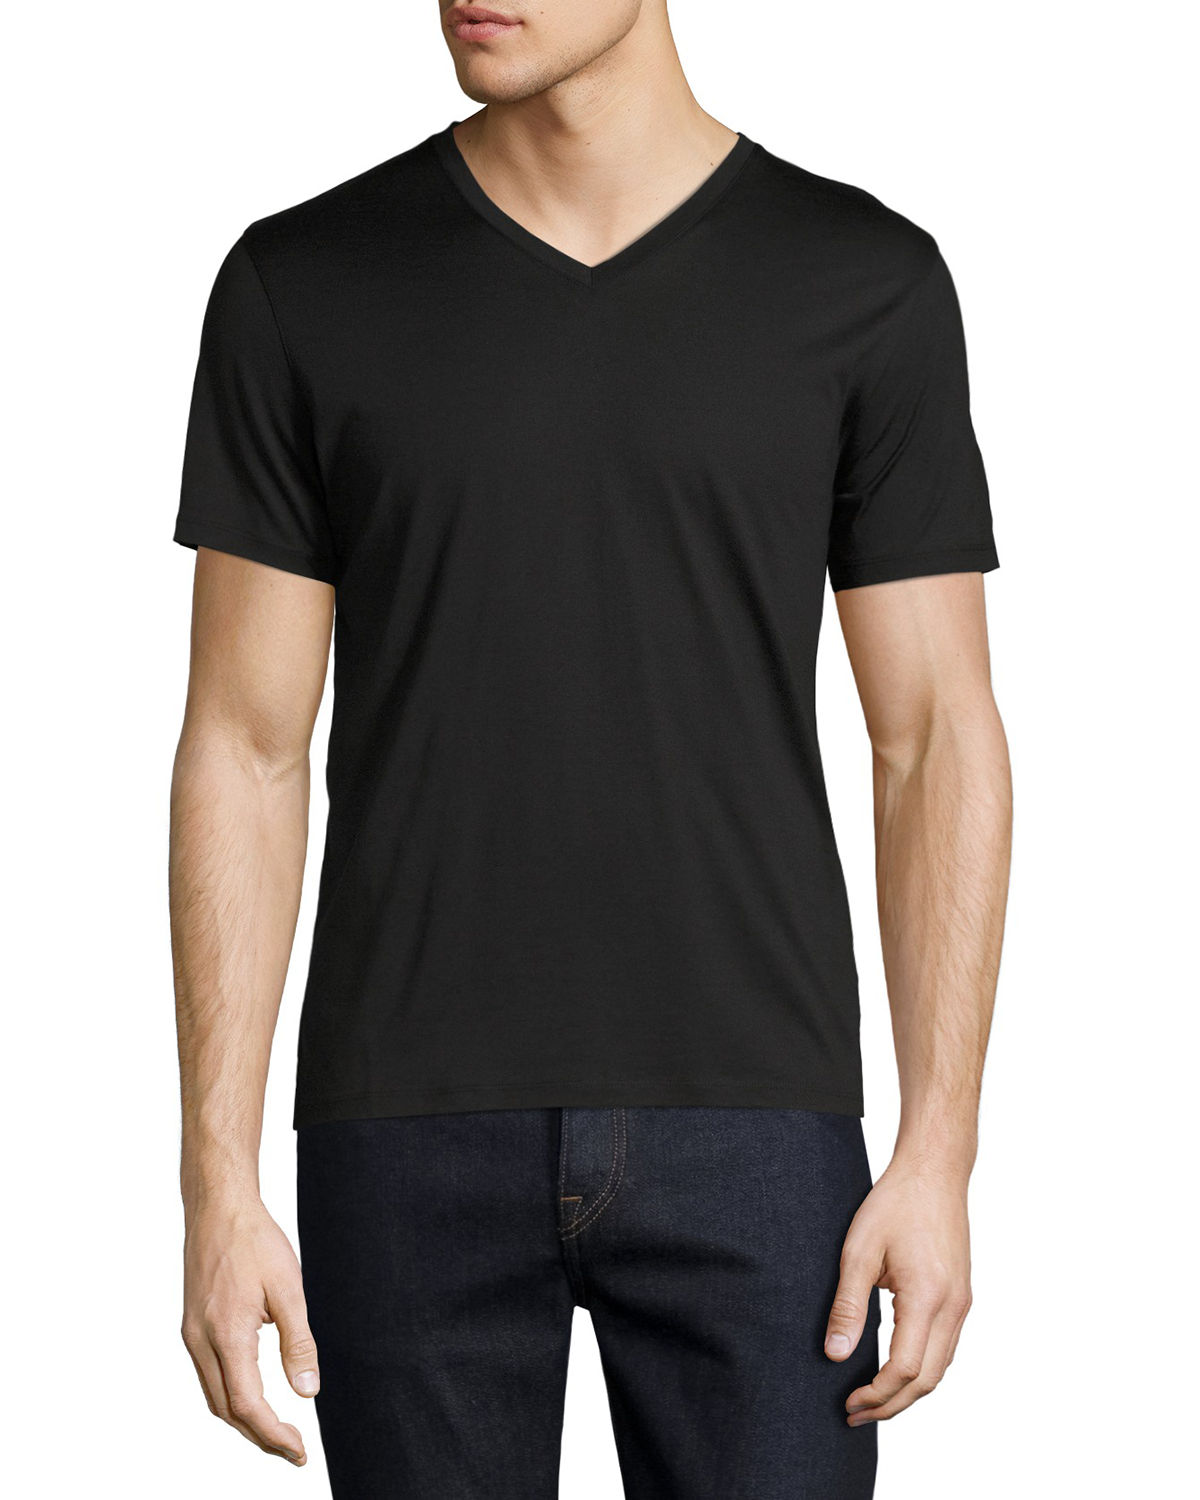 New Clay Plaito V-Neck T-Shirt